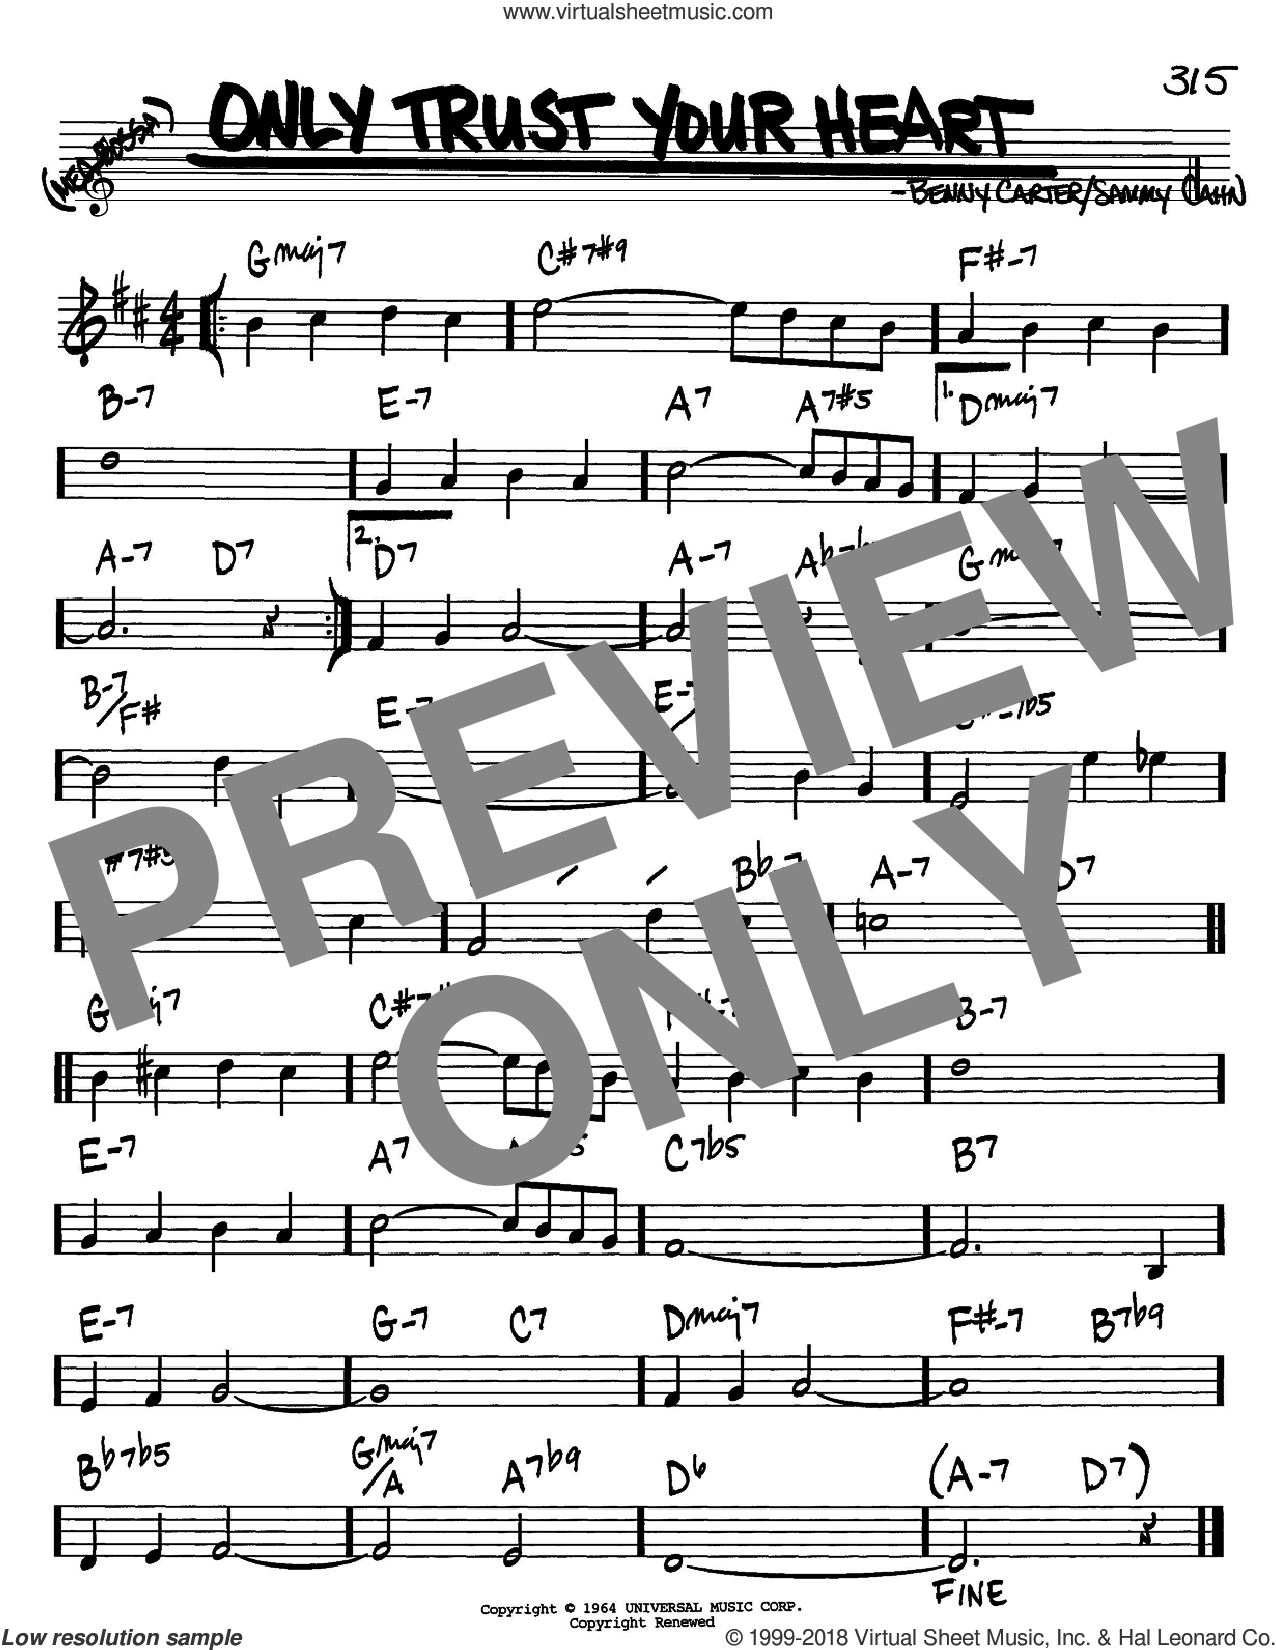 Only Trust Your Heart sheet music for voice and other instruments (Bb) by Benny Carter